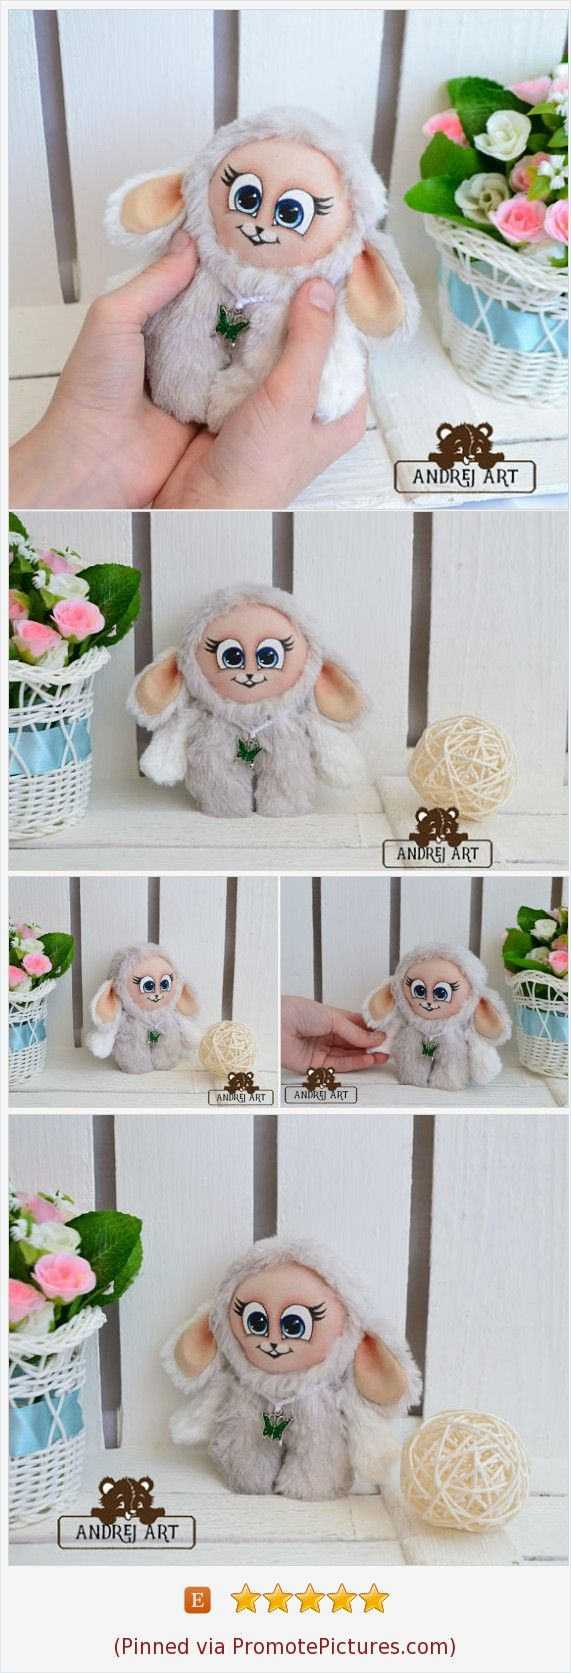 Easter Bunny Rabbit souvenir Exclusive Gift Present for Easter https://www.etsy.com/DollsbyLilia/listing/582735576/easter-bunny-rabbit-souvenir-plush?ref=shop_home_active_1  (Pinned using https://PromotePictures.com)